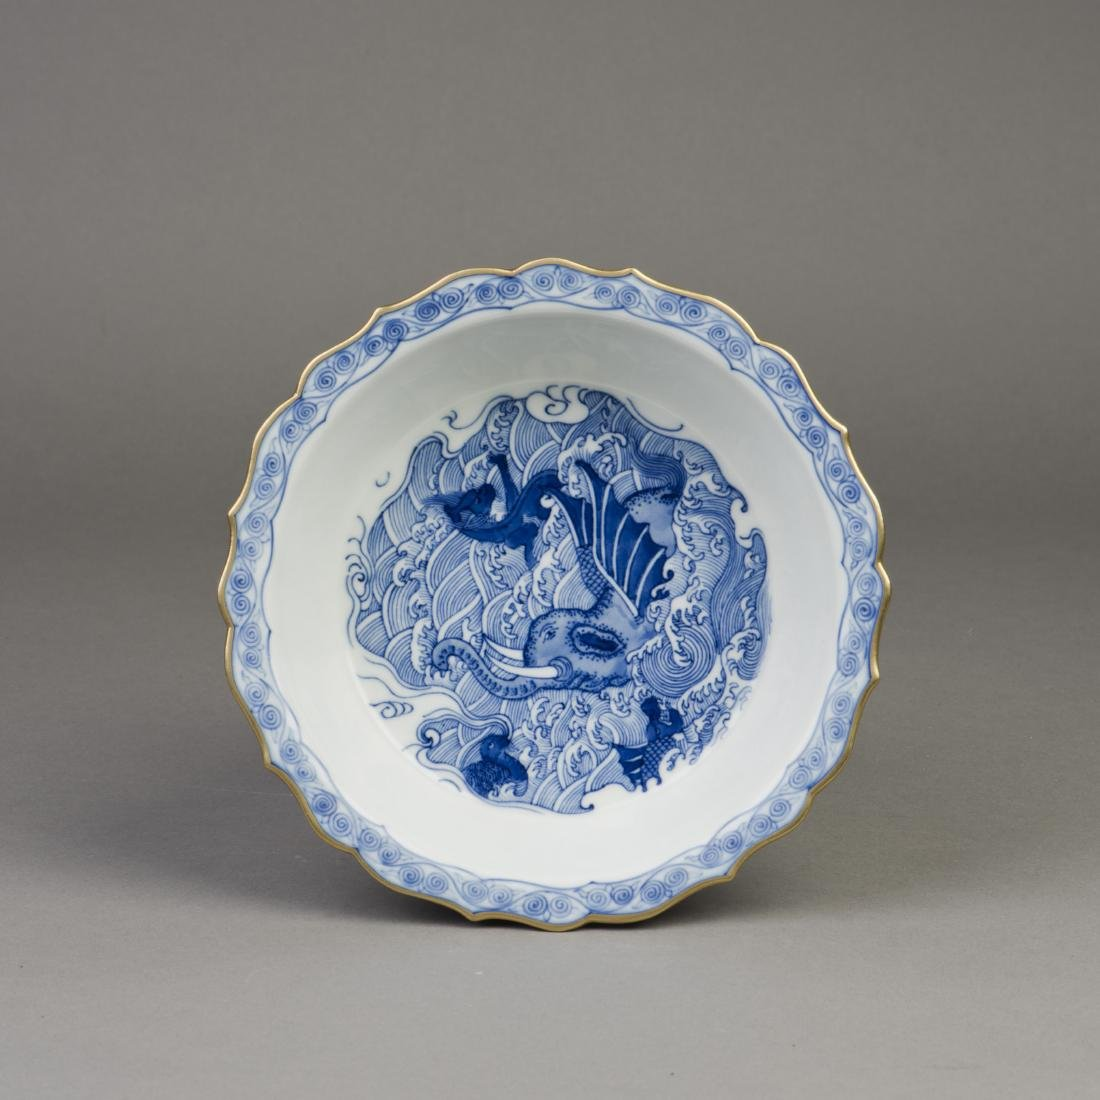 A CHINESE BLUE AND WHITE PORCELAIN NARCISSUS POT